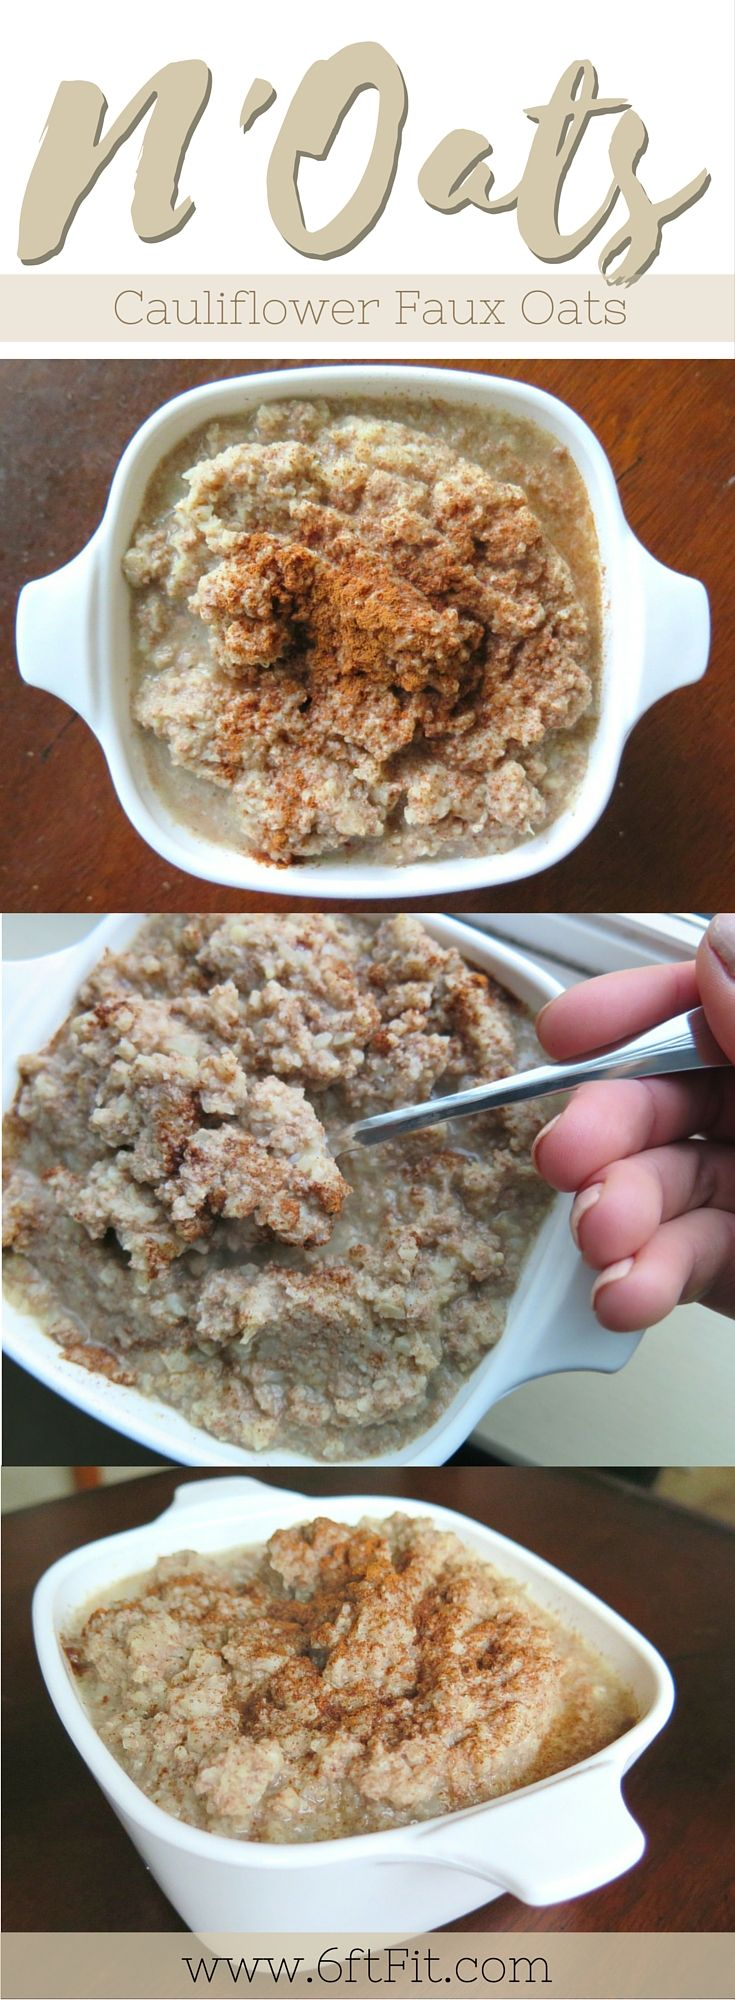 Why oats are good for you